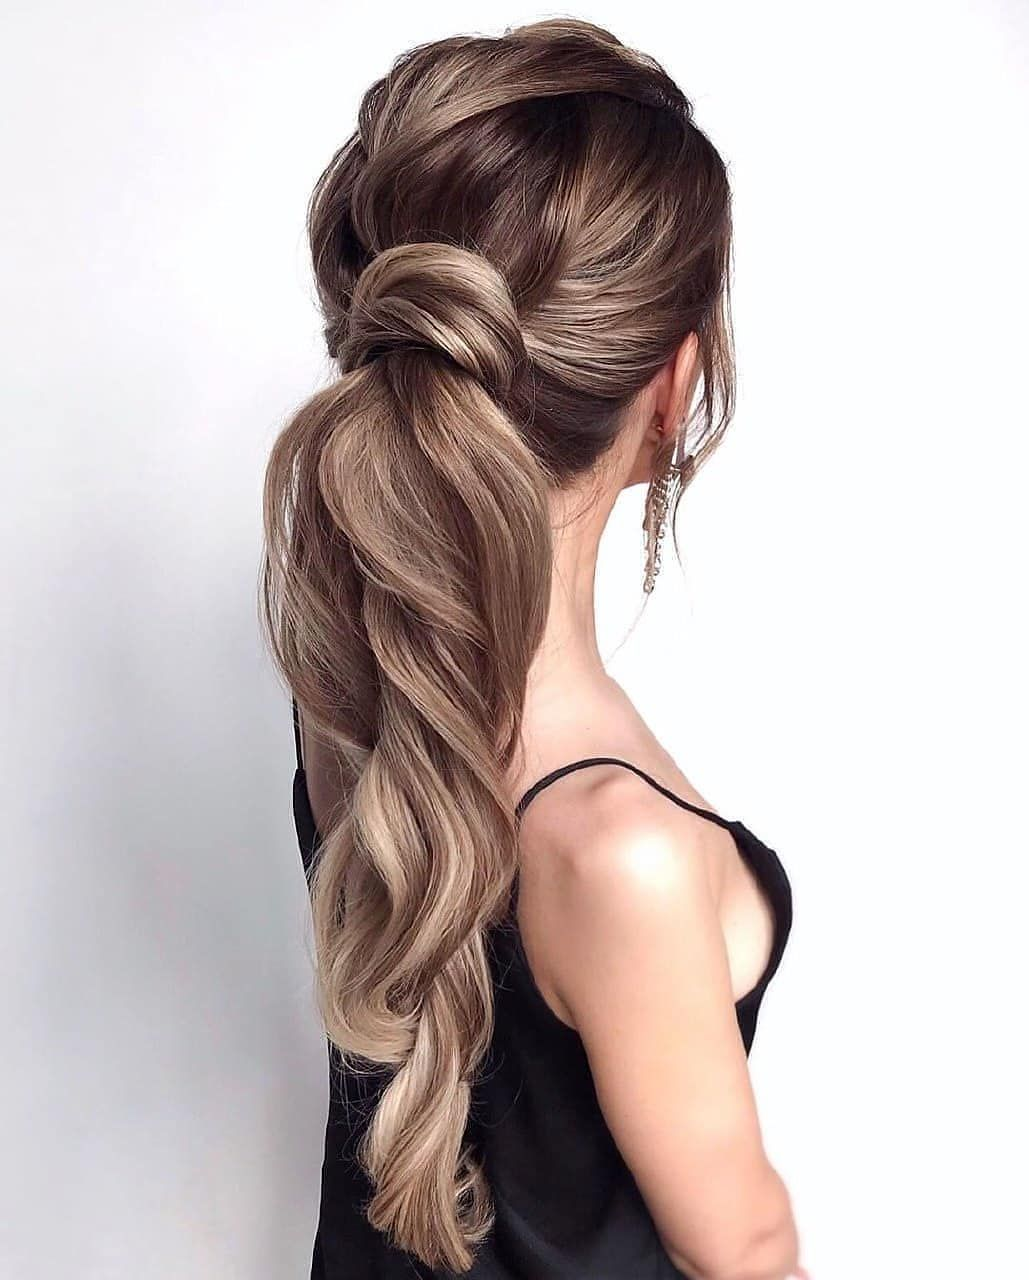 Hair Hairstyle Beard Keratin Mammal Whisker Shaving Mane Eyelash Fur Wig Facialha Easy Hairstyles For Long Hair Ponytail Hairstyles Easy Hairstyles